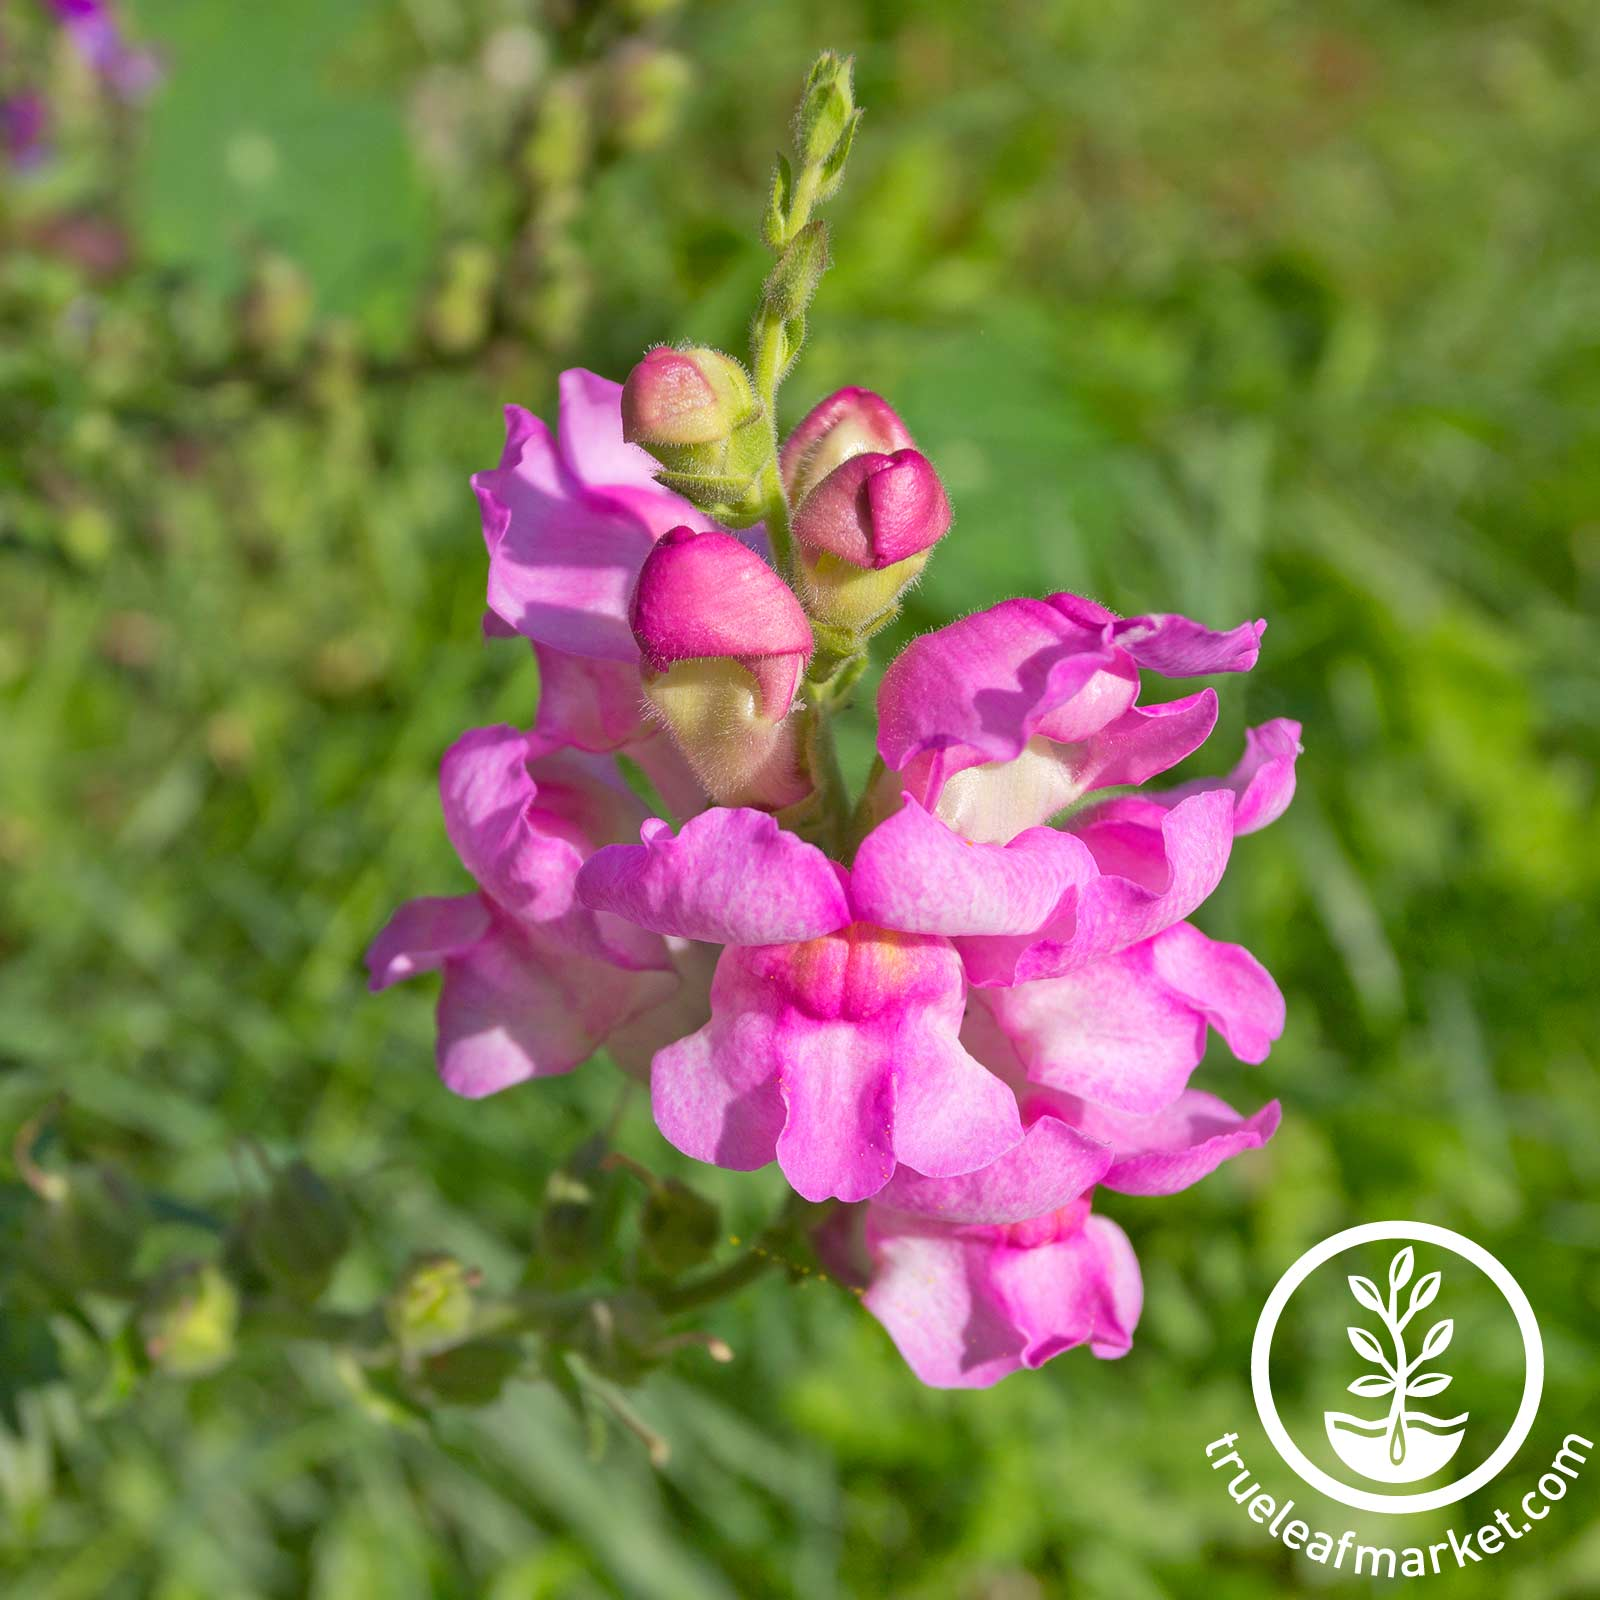 Snapdragon Floral Showers Series Lilac Seed